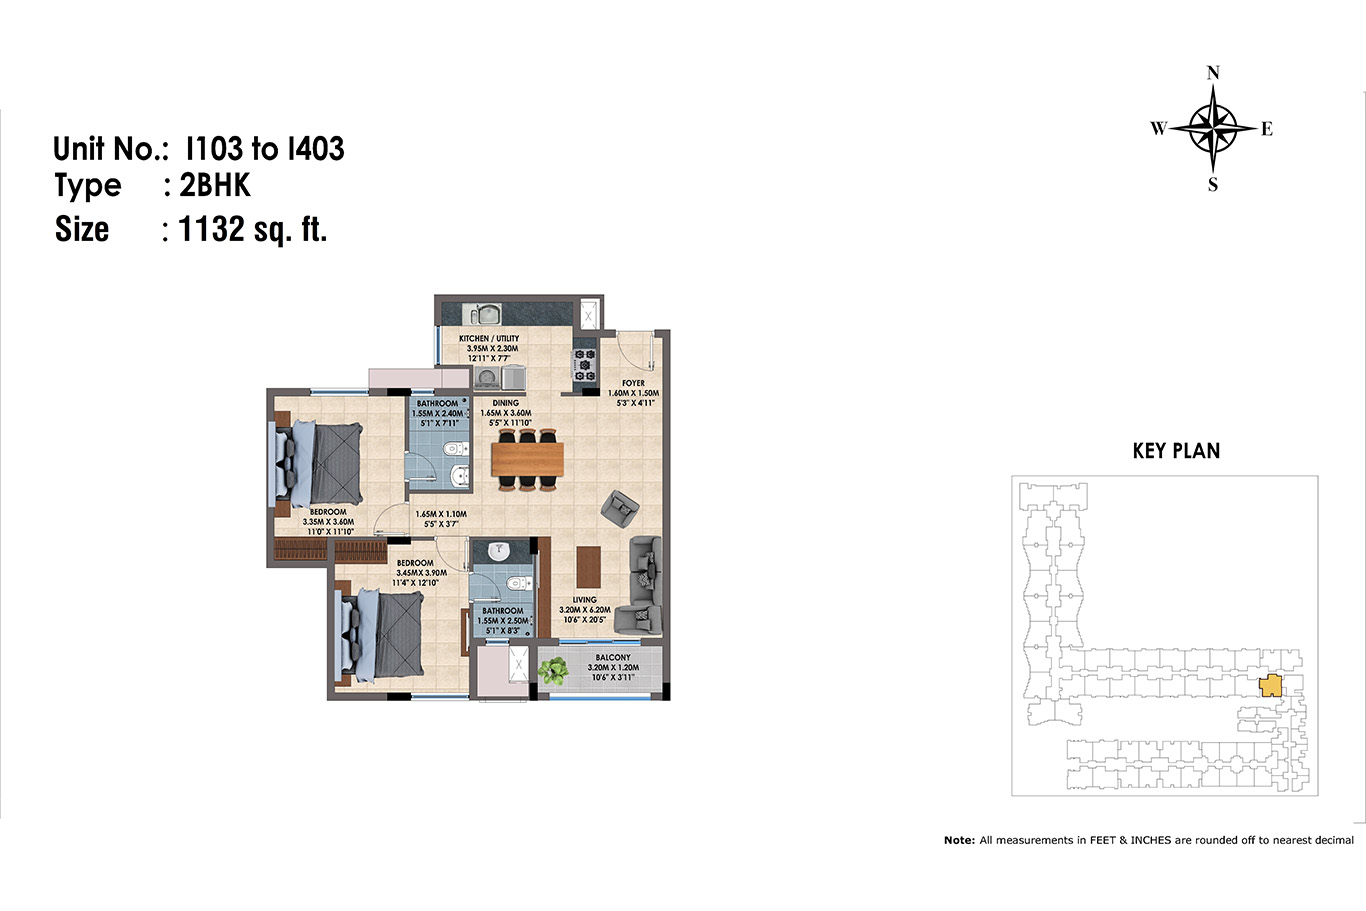 1103 to 1403(2BHK)